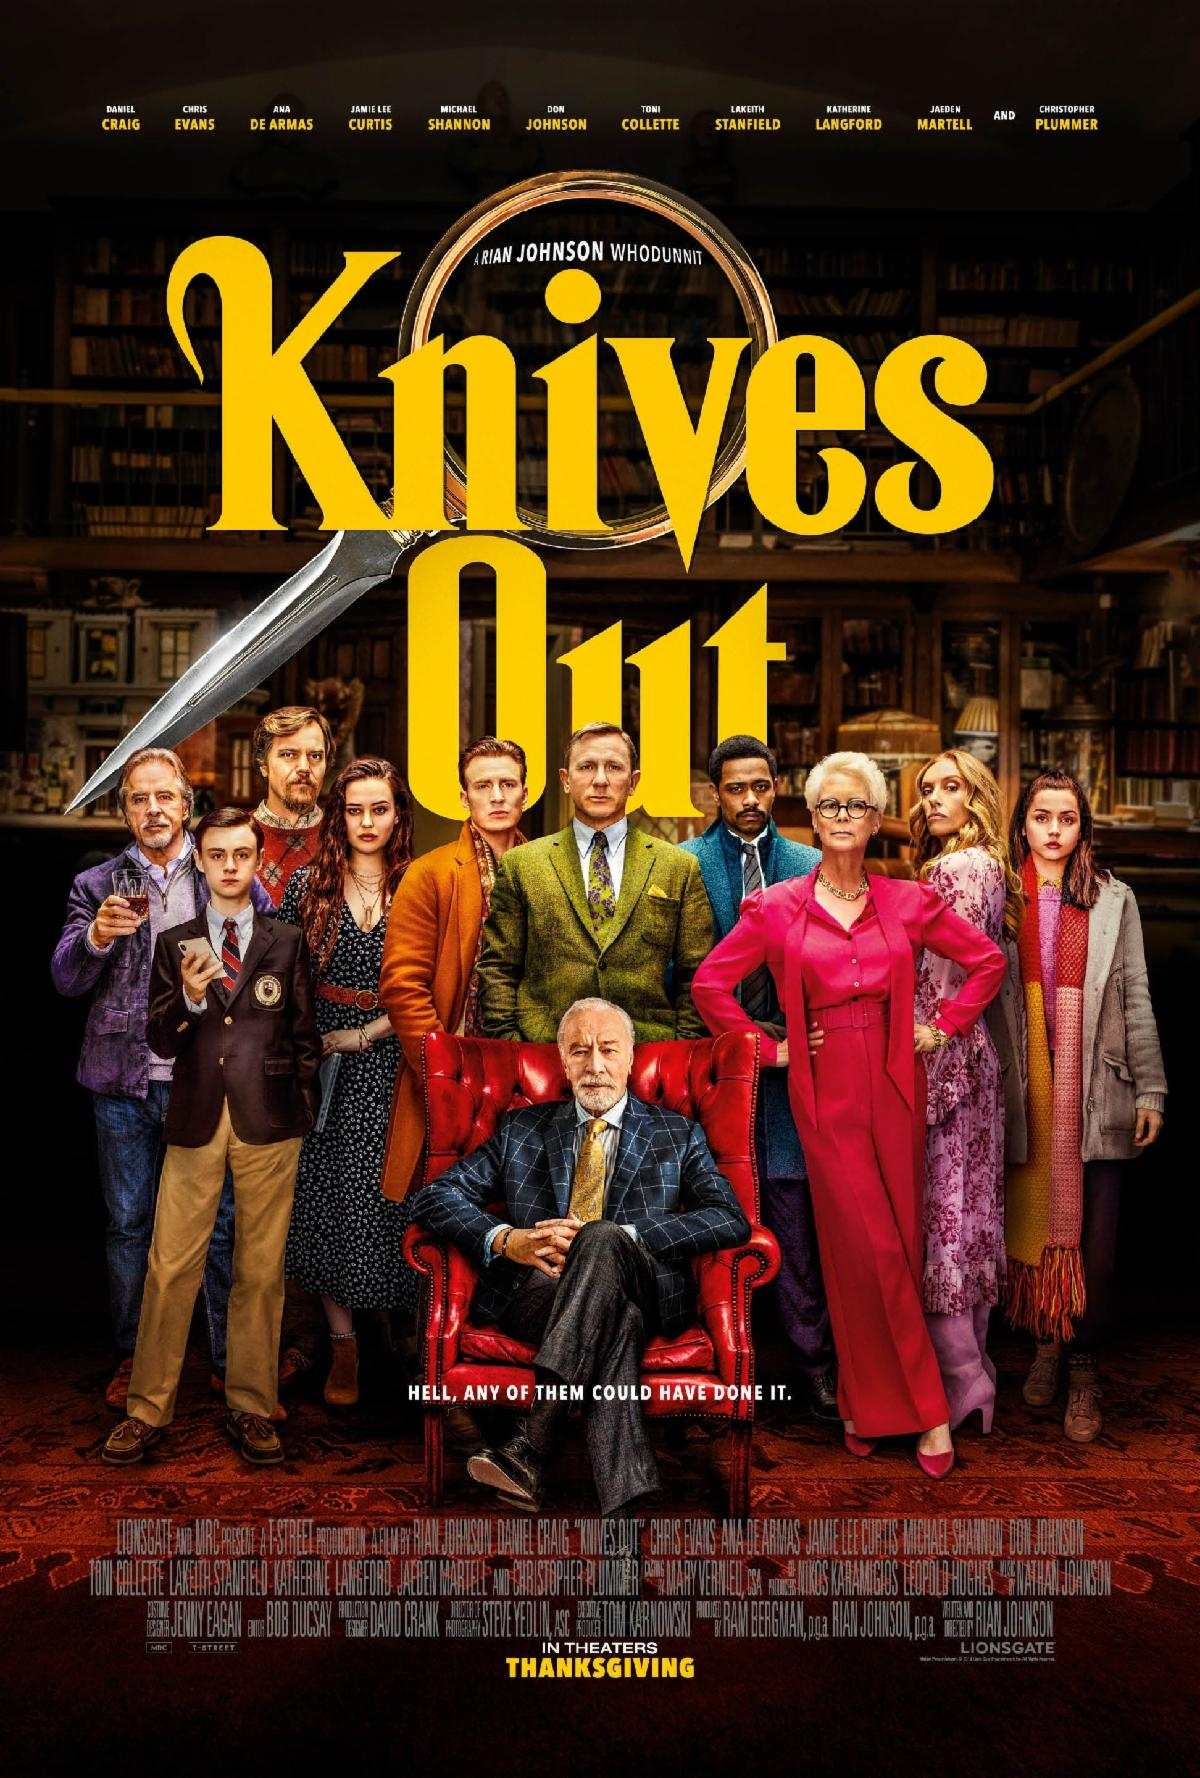 'Knives Out' movie poster